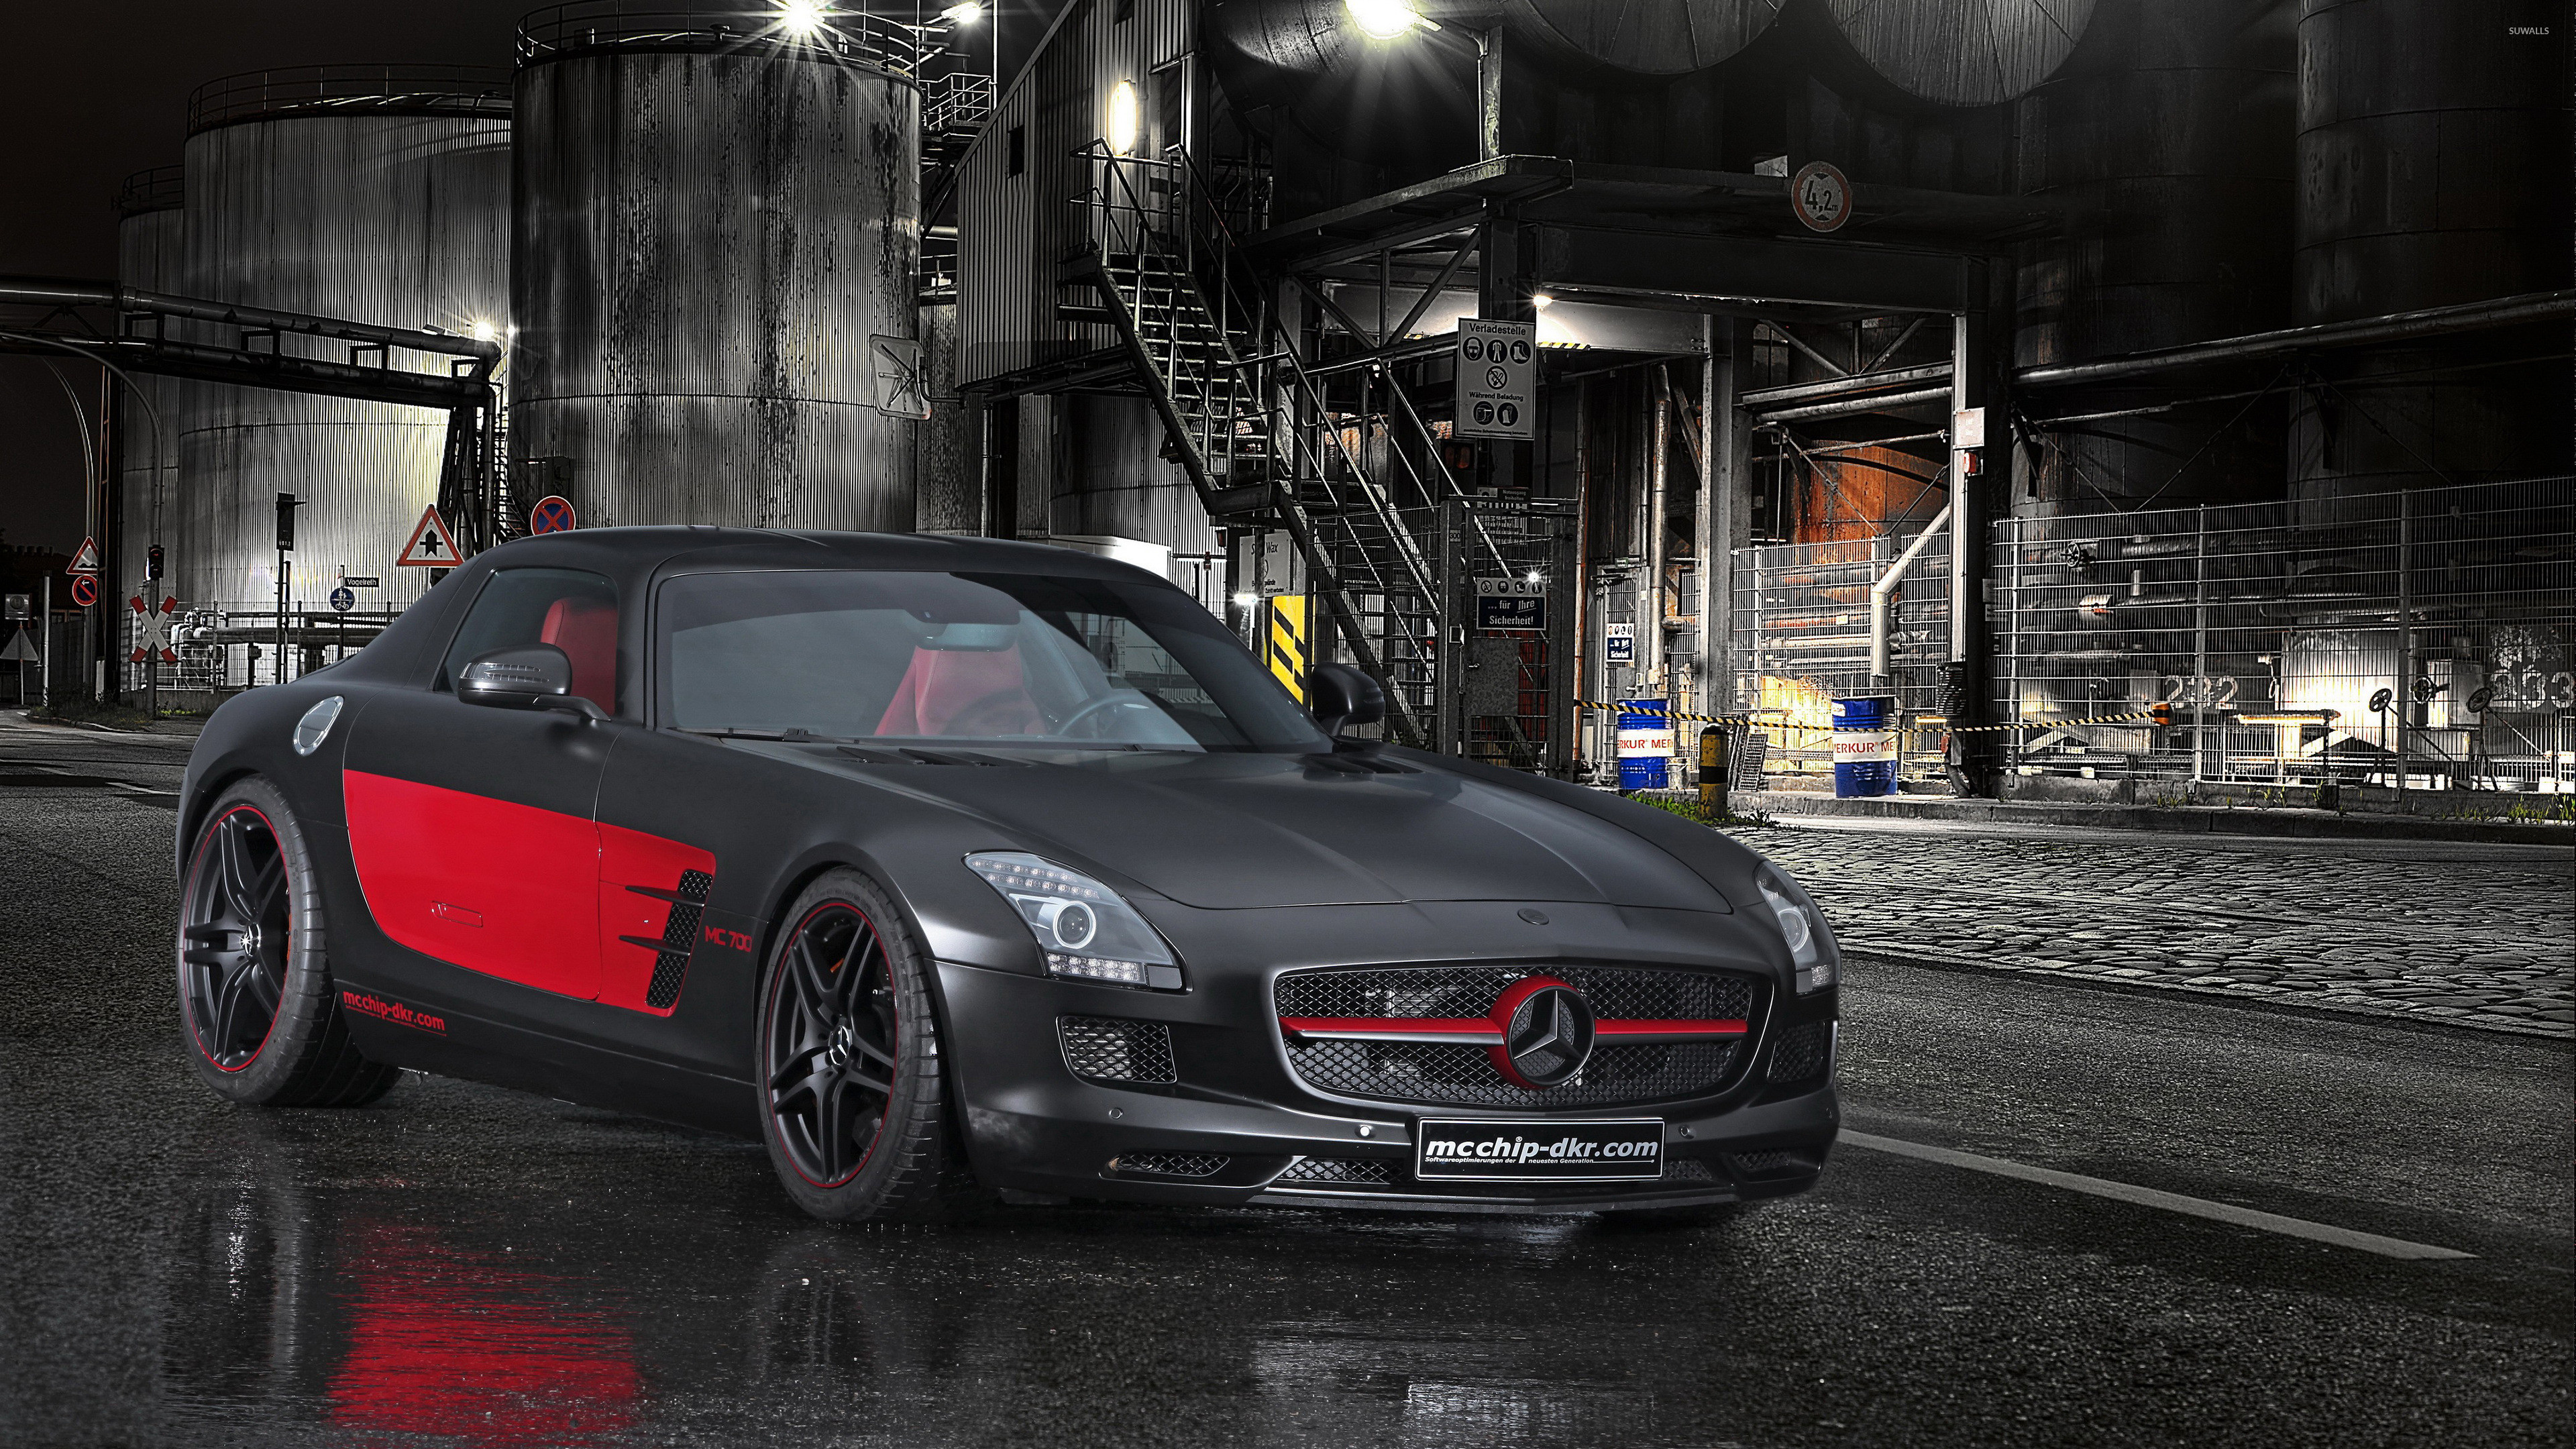 3840x2160 Black and red Mcchip-DKR Mercedes-Benz SLS AMG wallpaper